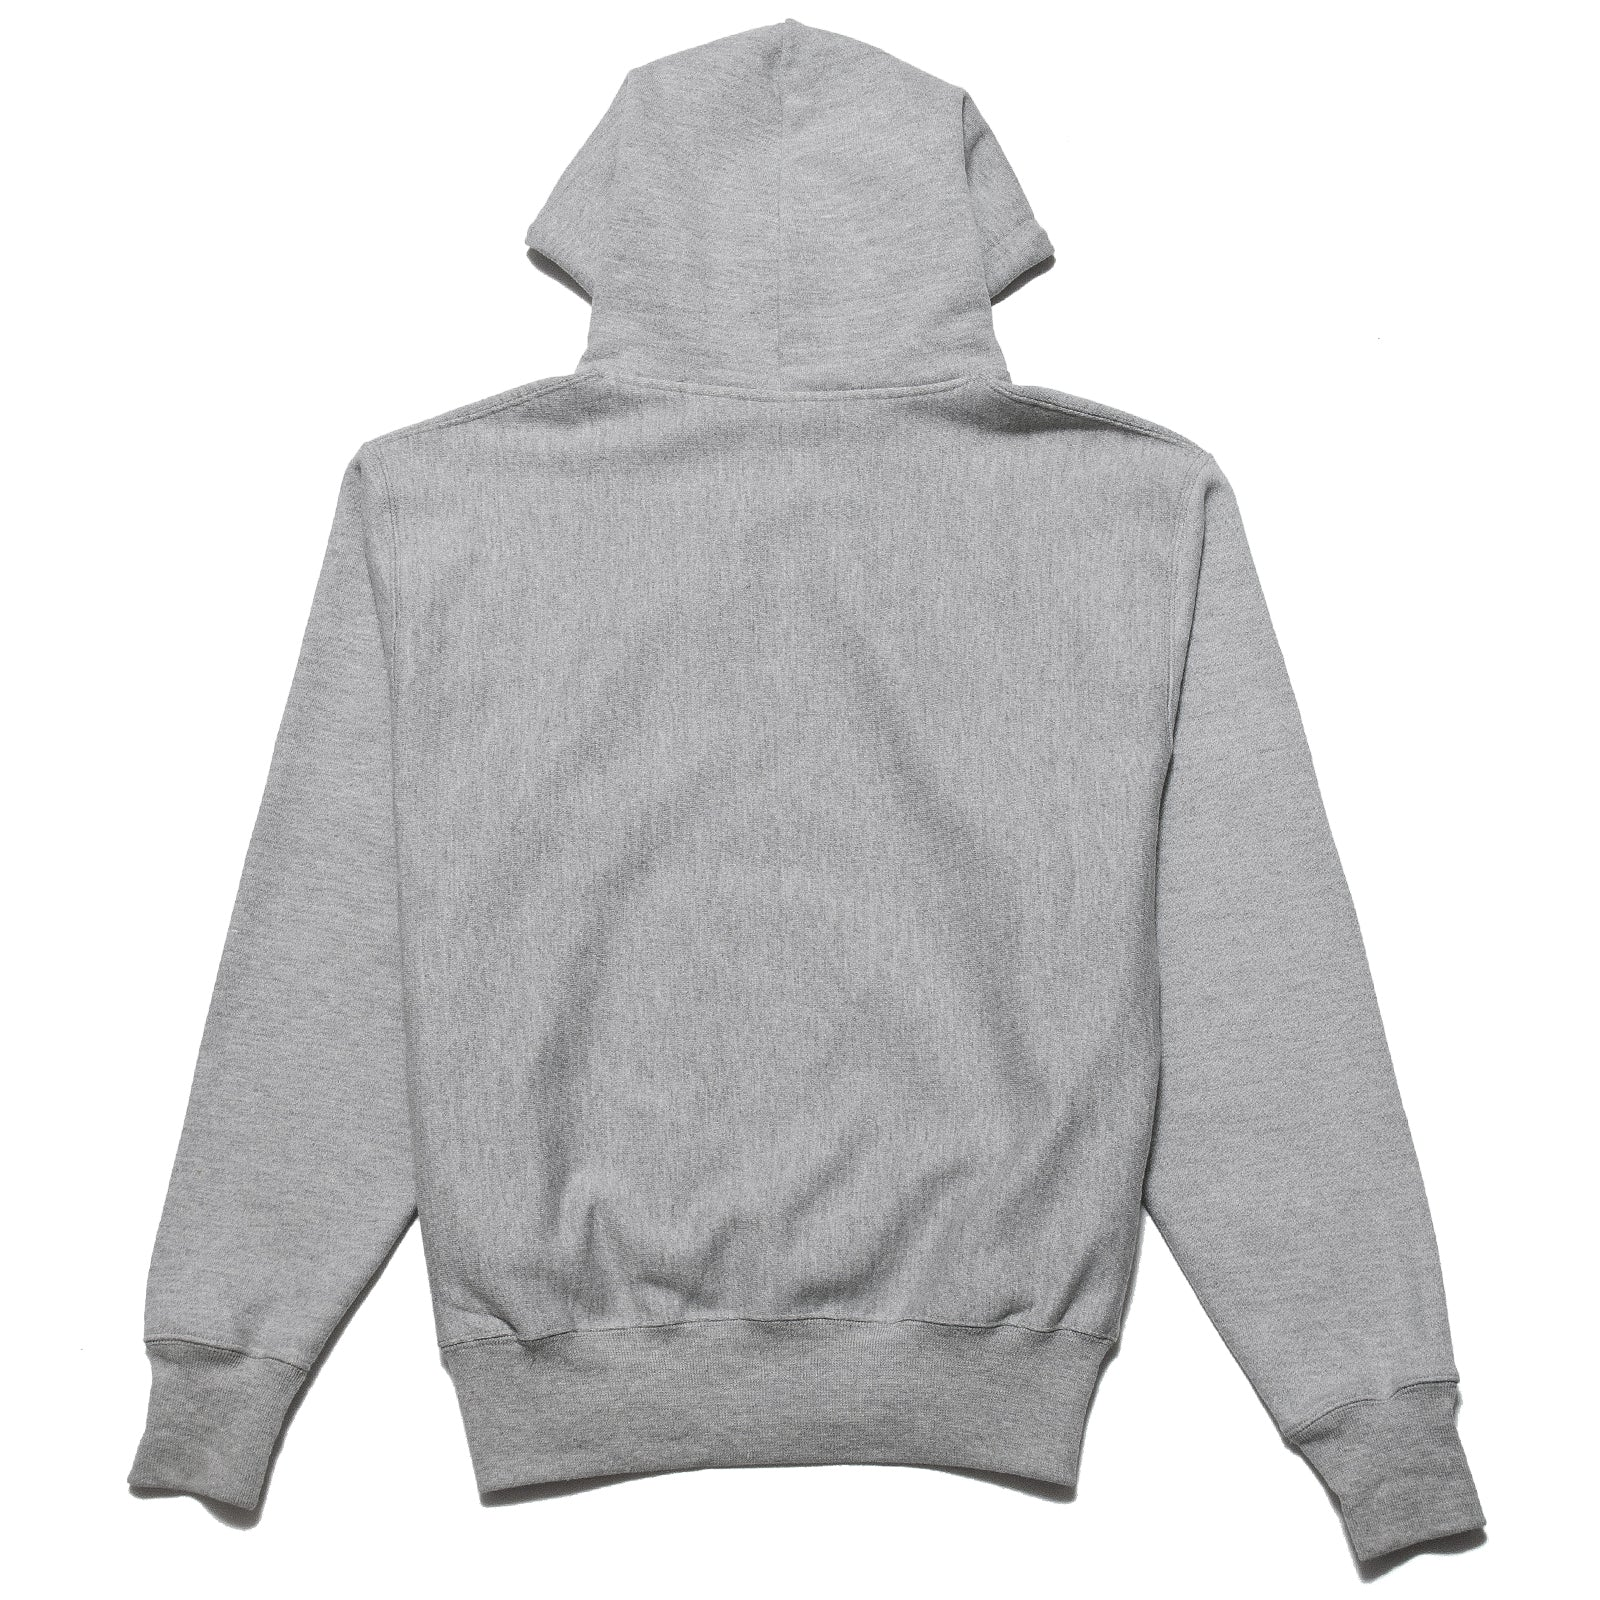 College Dropout Hoodie Grey Golden Child Inc